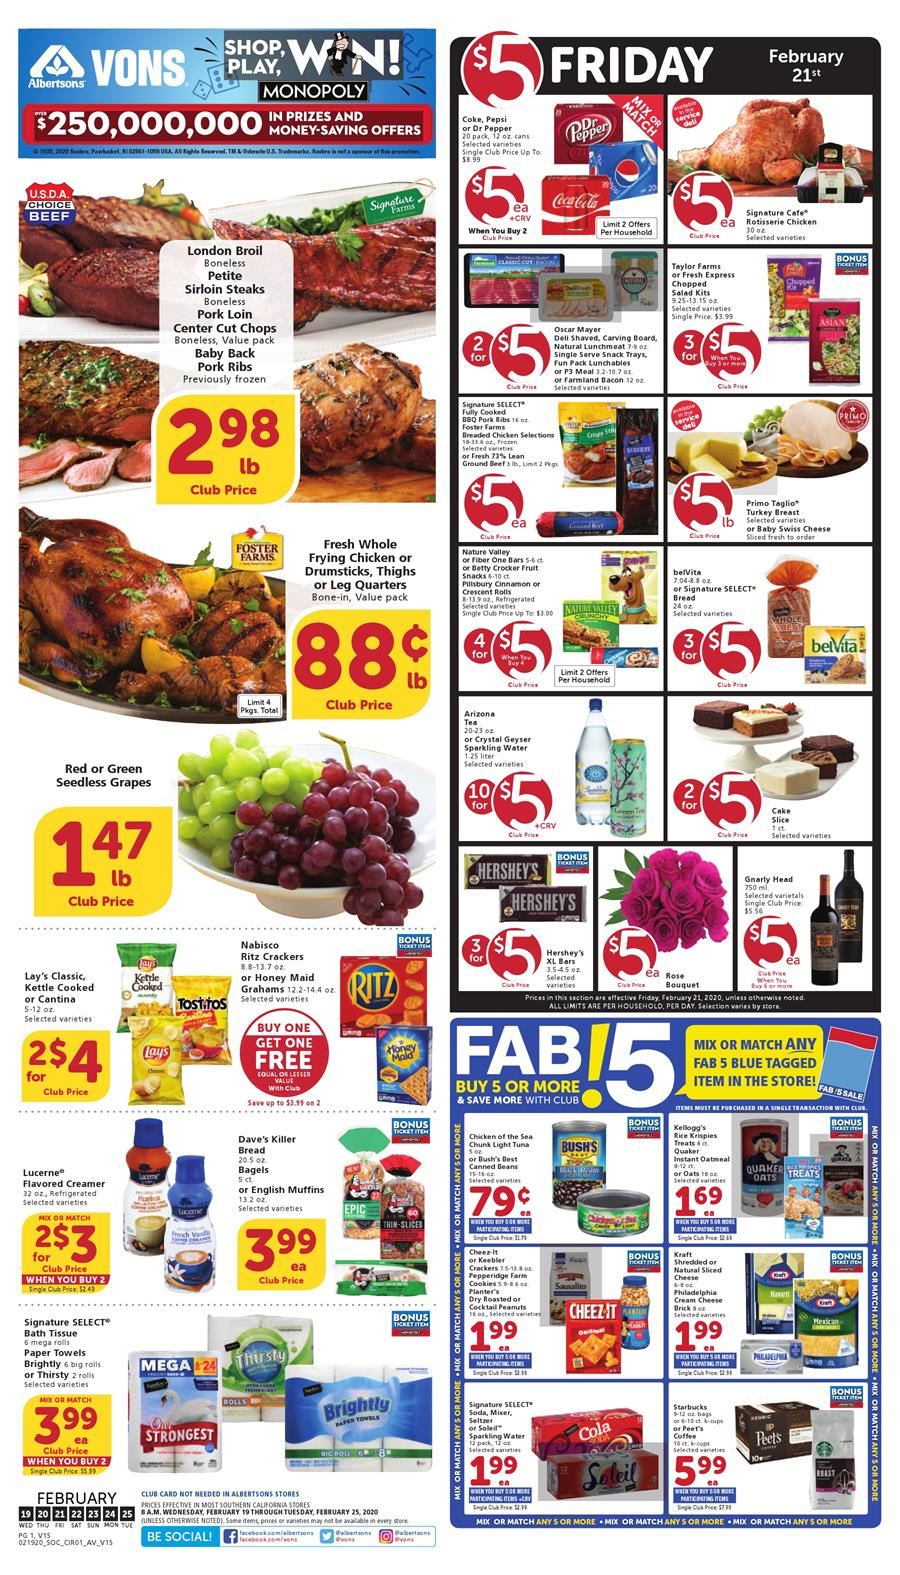 Vons Final February Weekly Ad valid from Feb 19 – 25, 2020.